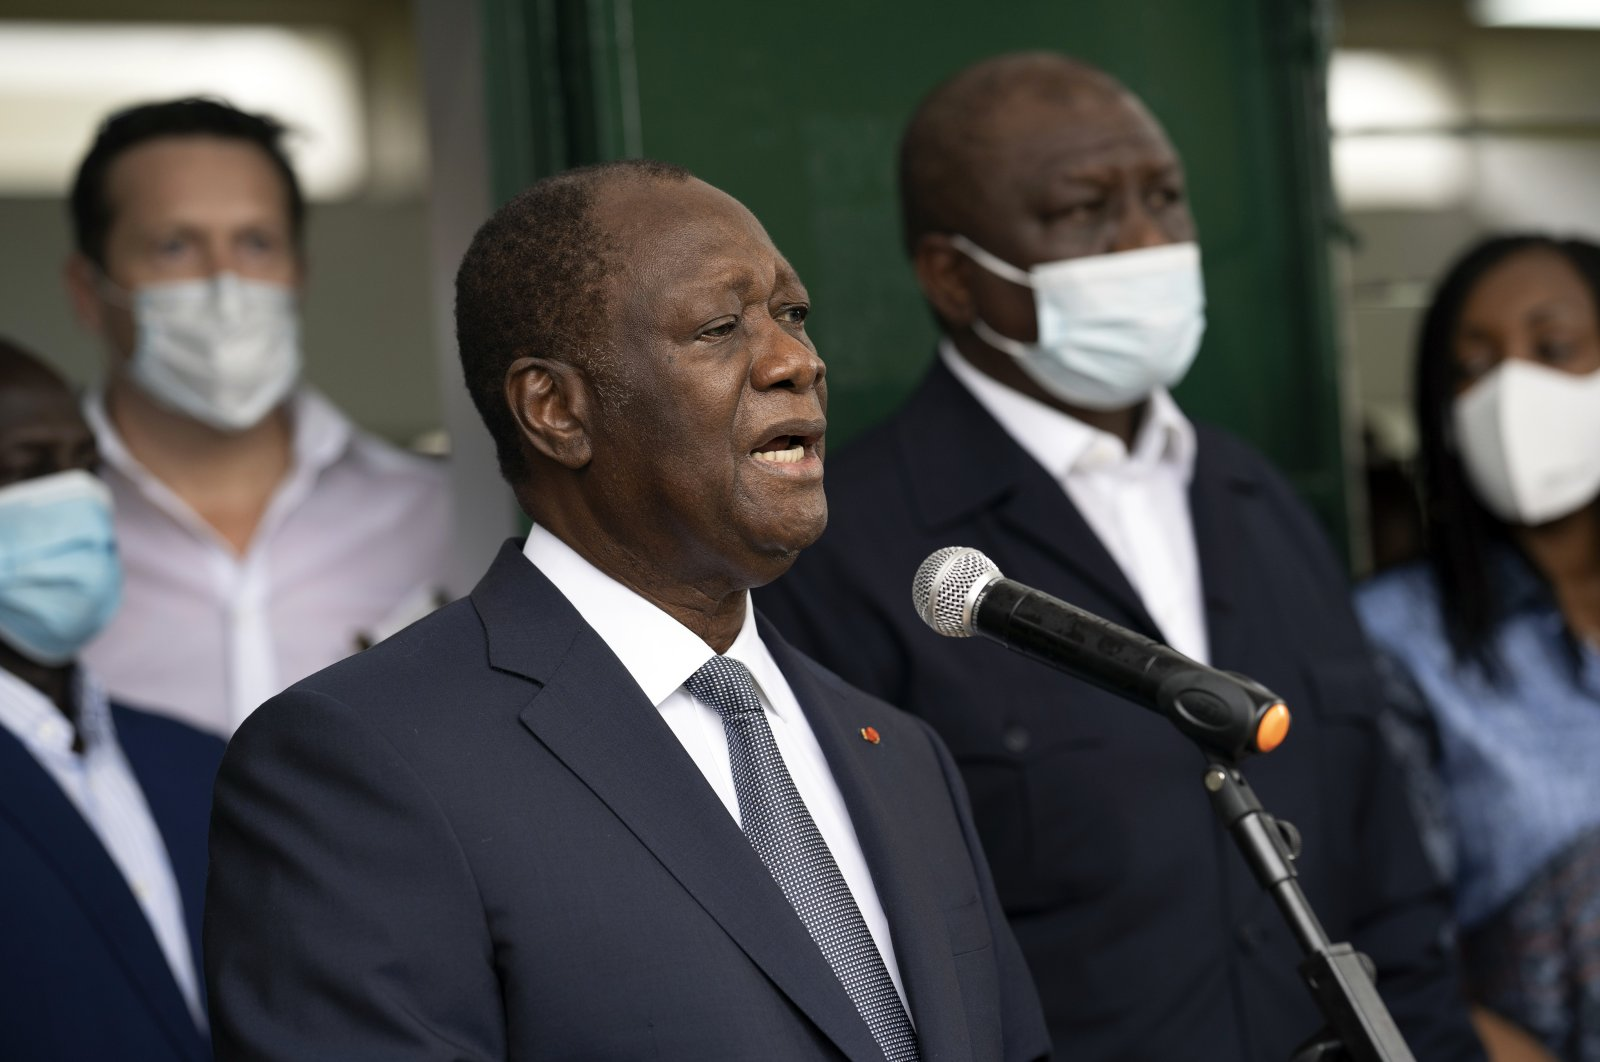 Ivory Coast President Alassane Ouattara speaks to journalists after voting at a polling station during presidential elections in Abidjan, Ivory Coast, Saturday, Oct. 31, 2020. (AP Photo)